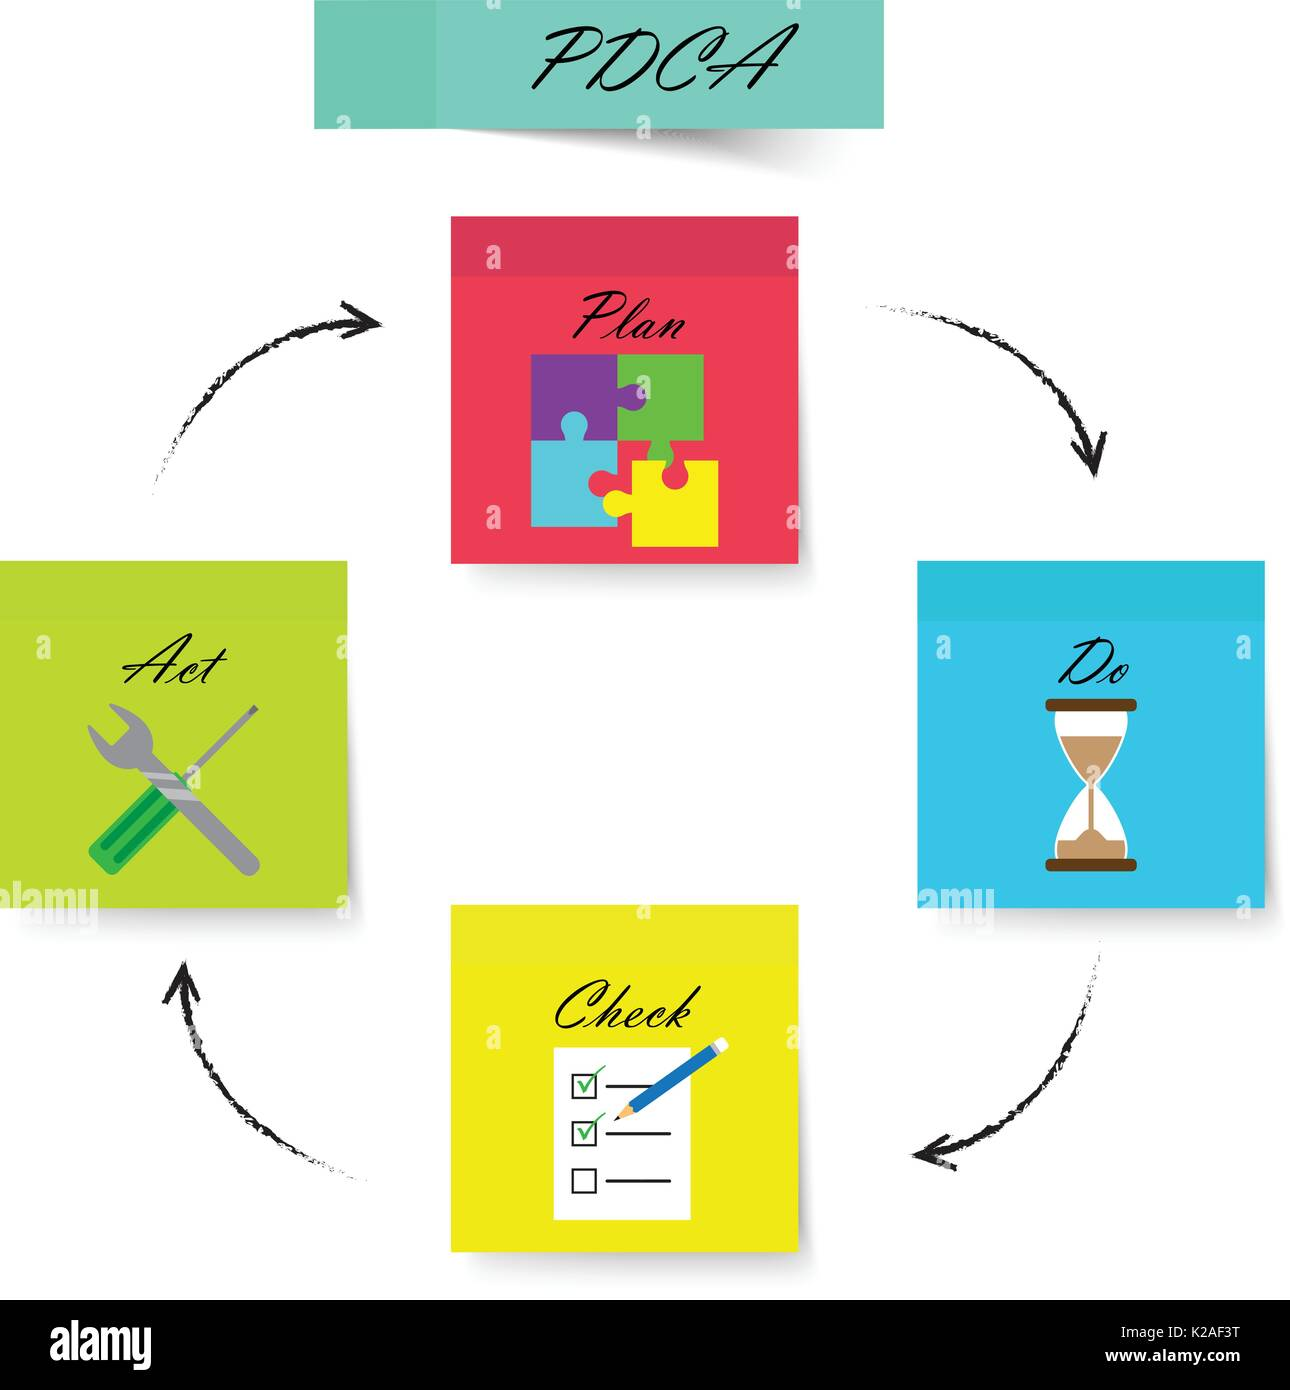 hight resolution of pdca diagram as colorful sticky notes with icons inside jigsaw sandglass checklist with pencil wrench screwdriver circle arrows are pencil line